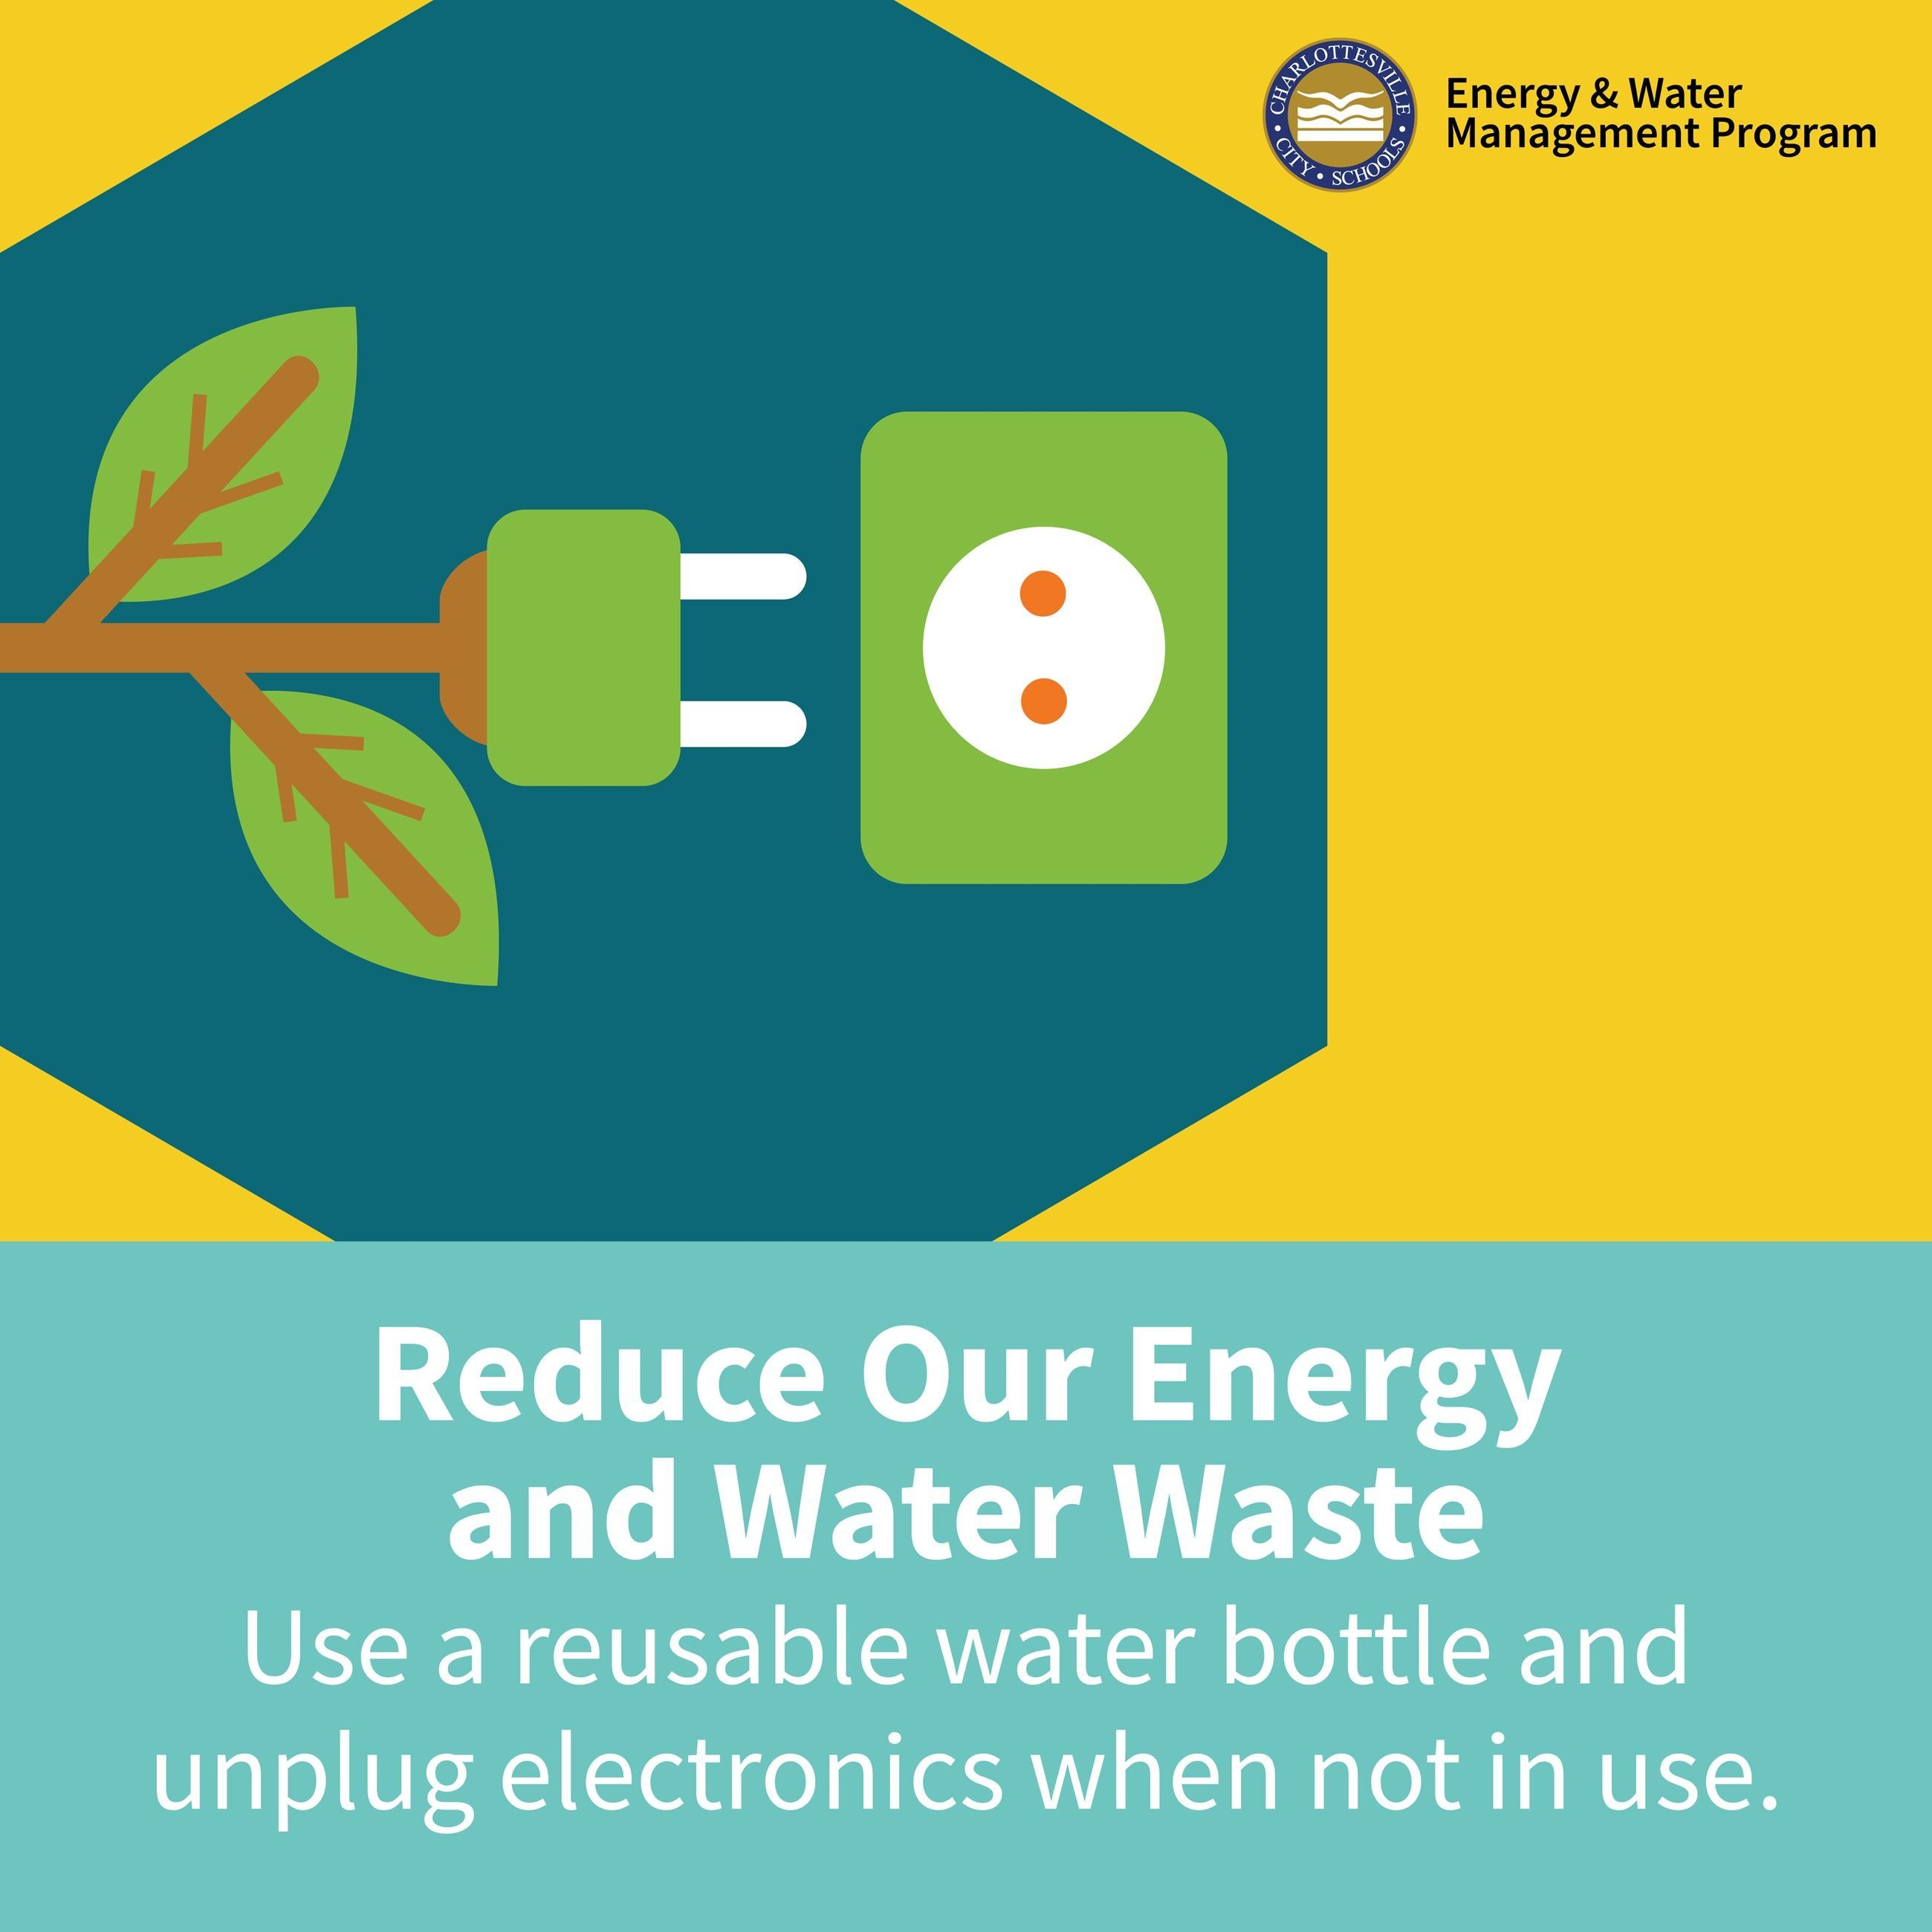 Reduce Our Energy and Water Waste: Use a reusable water bottle & unplug electronics when not in use.